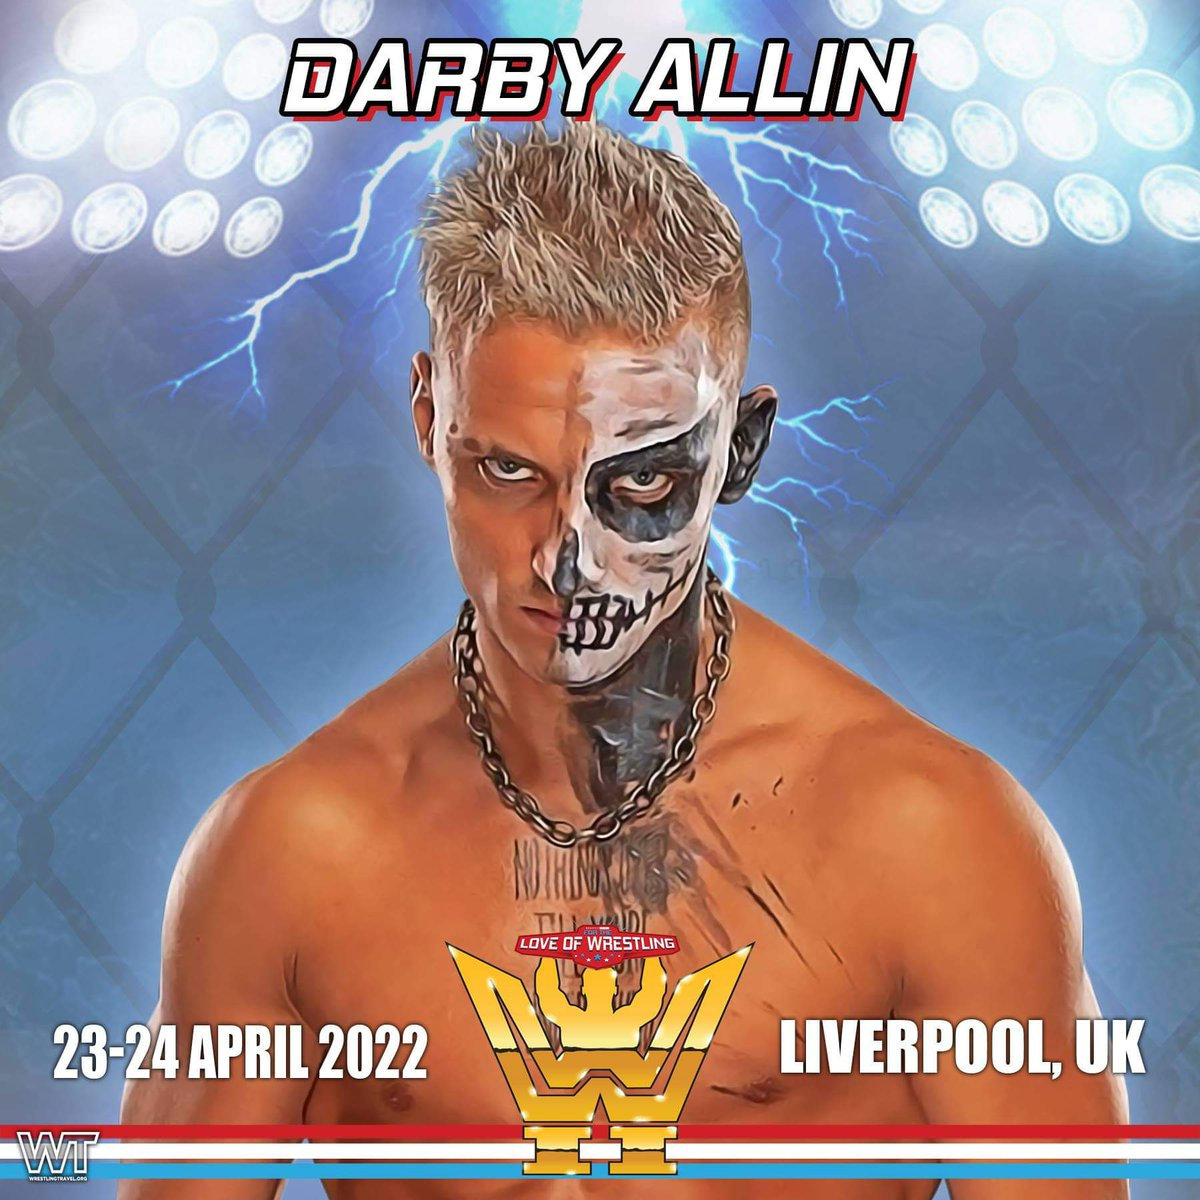 Current #AEW star and former TNT Champion @DarbyAllin is coming to FTLOW II next year  Photo and autograph tickets available here -    #DarbyAllin #AEWDynamite #AEWRampage #AEWonTNT #AEWFullGear #AllEliteWrestling #wrestling #ComicCon #Liverpool #FTLOW